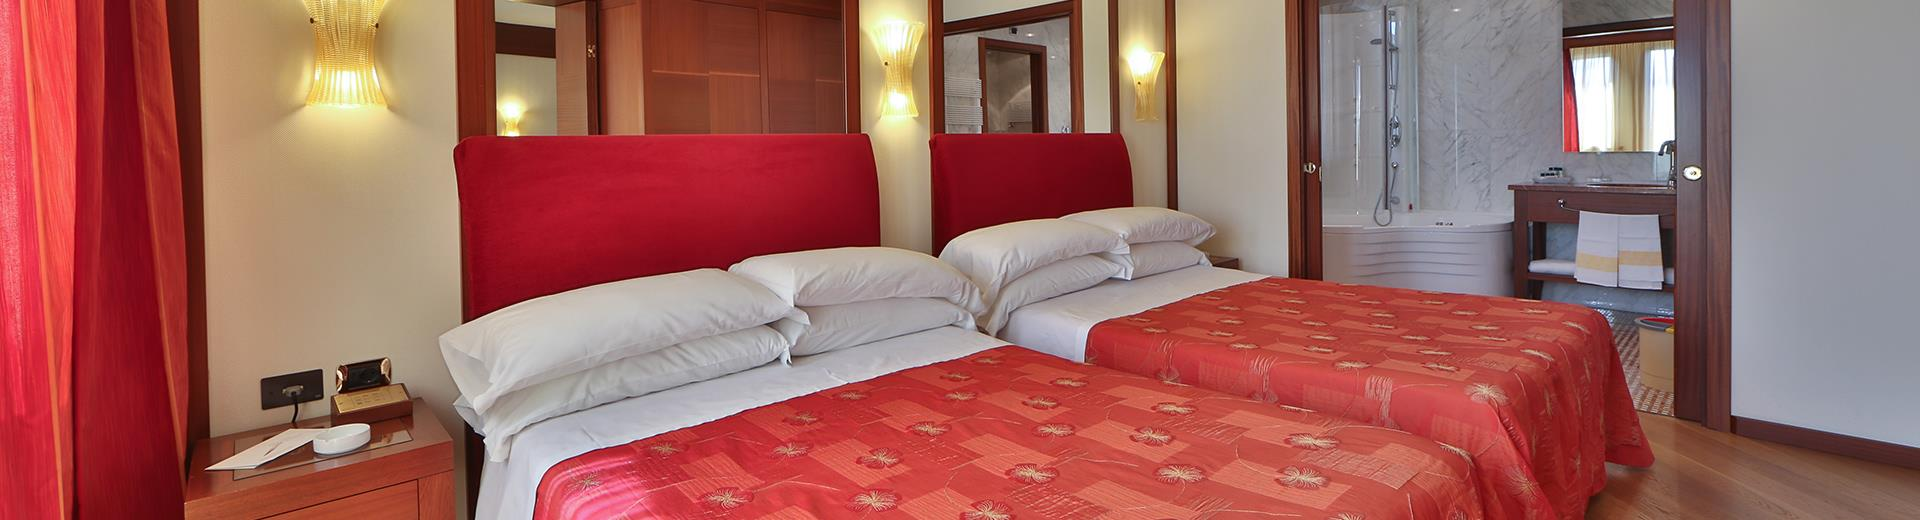 Looking for a hotel for your stay in Sanremo (IM)? Book/reserve at the Best Western Hotel Nazionale